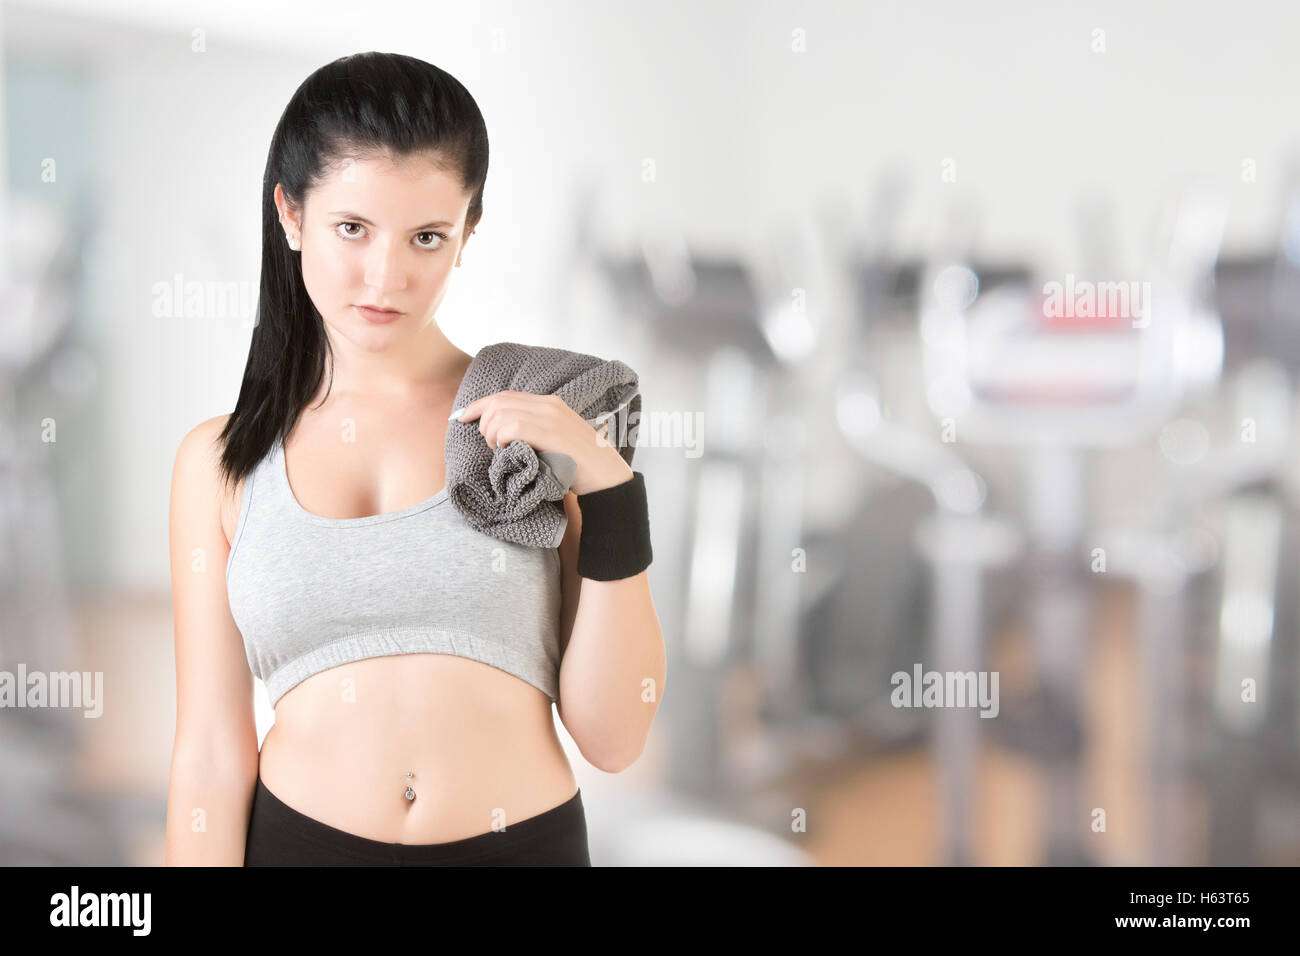 Woman resting with a towel around her neck after a fitness workout, in a gym - Stock Image